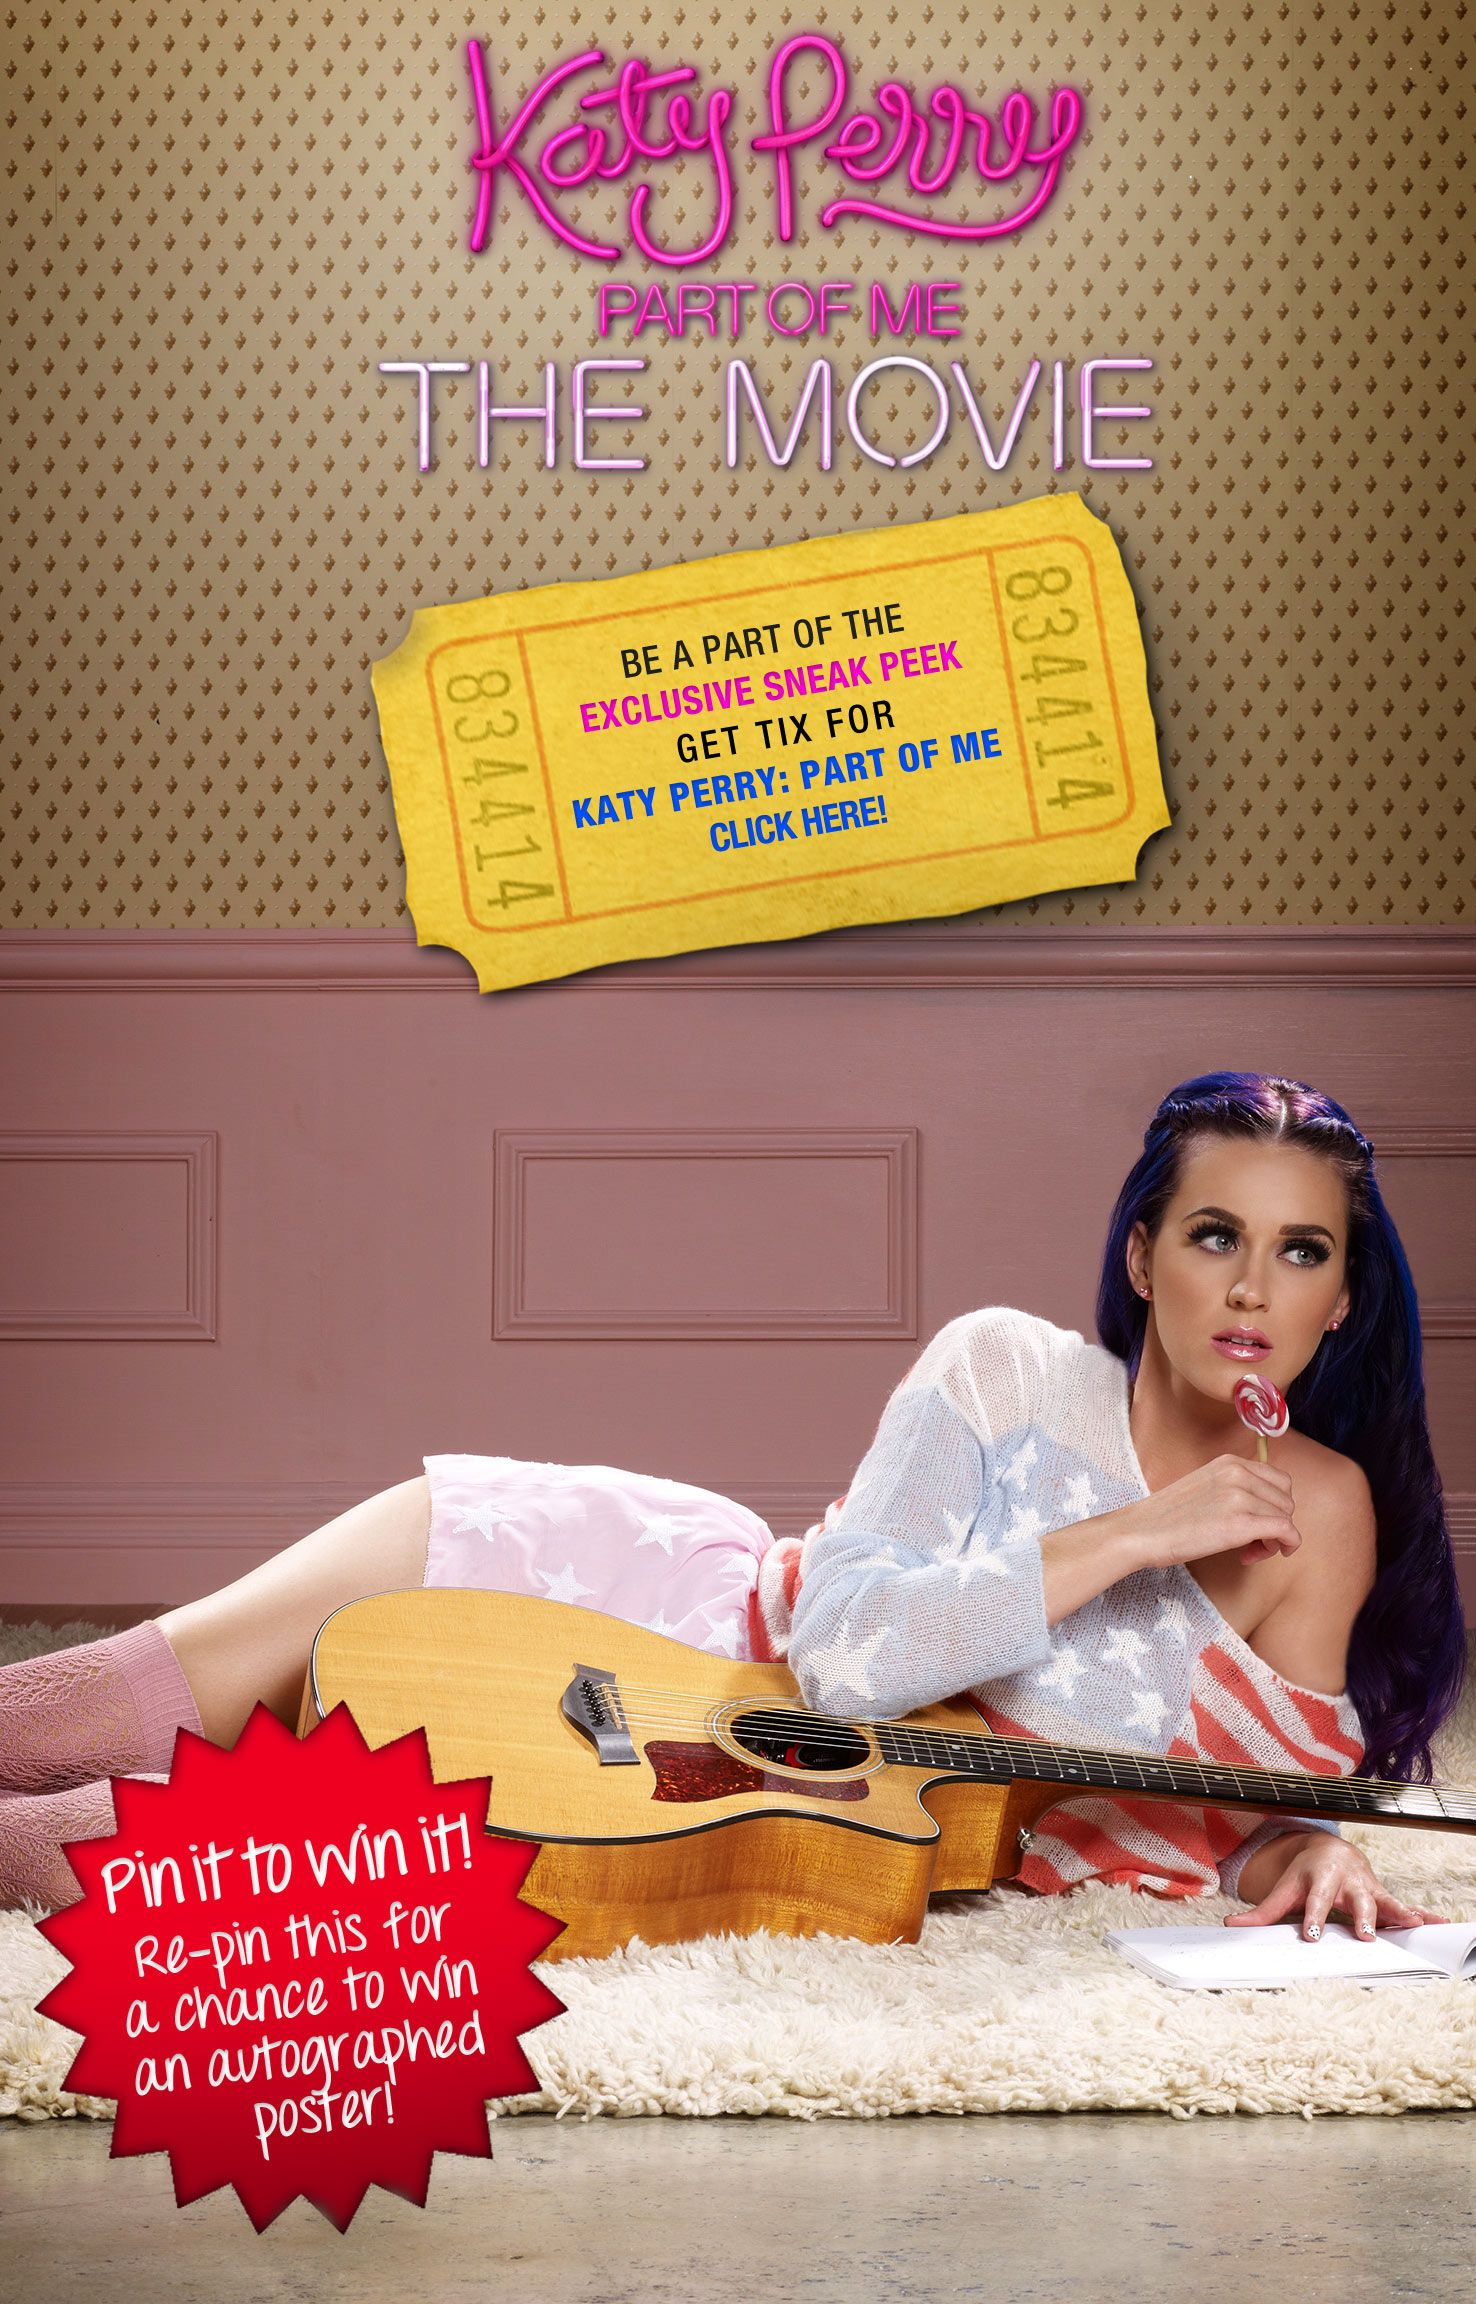 Katy Perry Part of Me 3D: Repin this image for a chance to win an exclusive Katy Perry 3D signed movie poster! www.KatyPerryPartofMe.com/sneaks